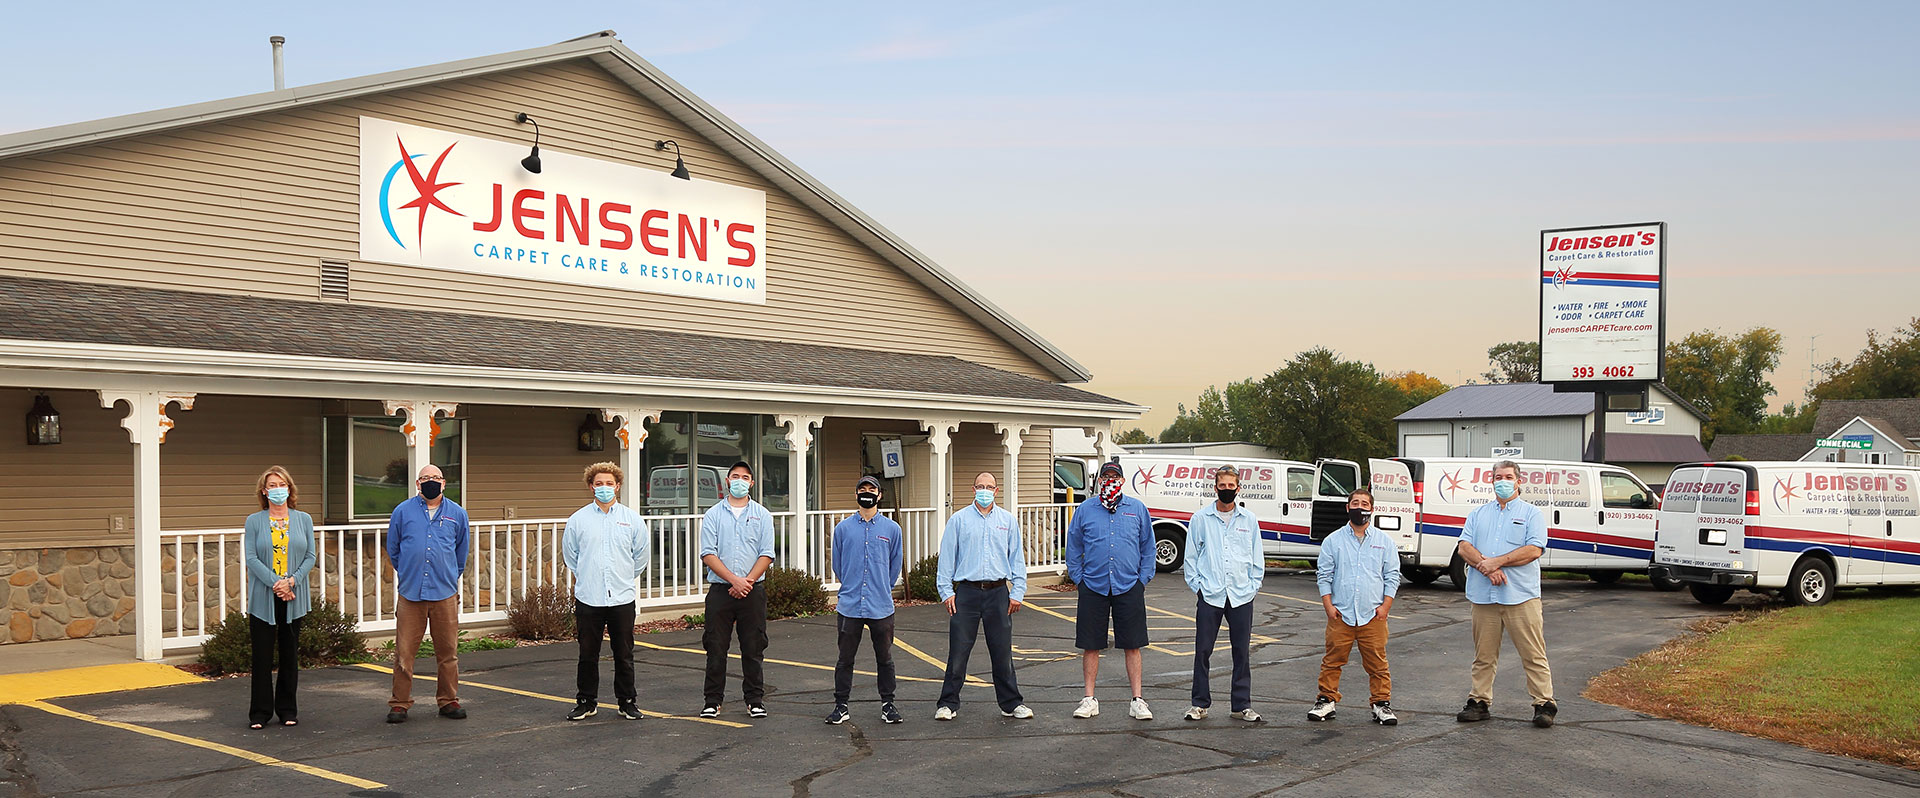 Jensens-Staff-Trucks